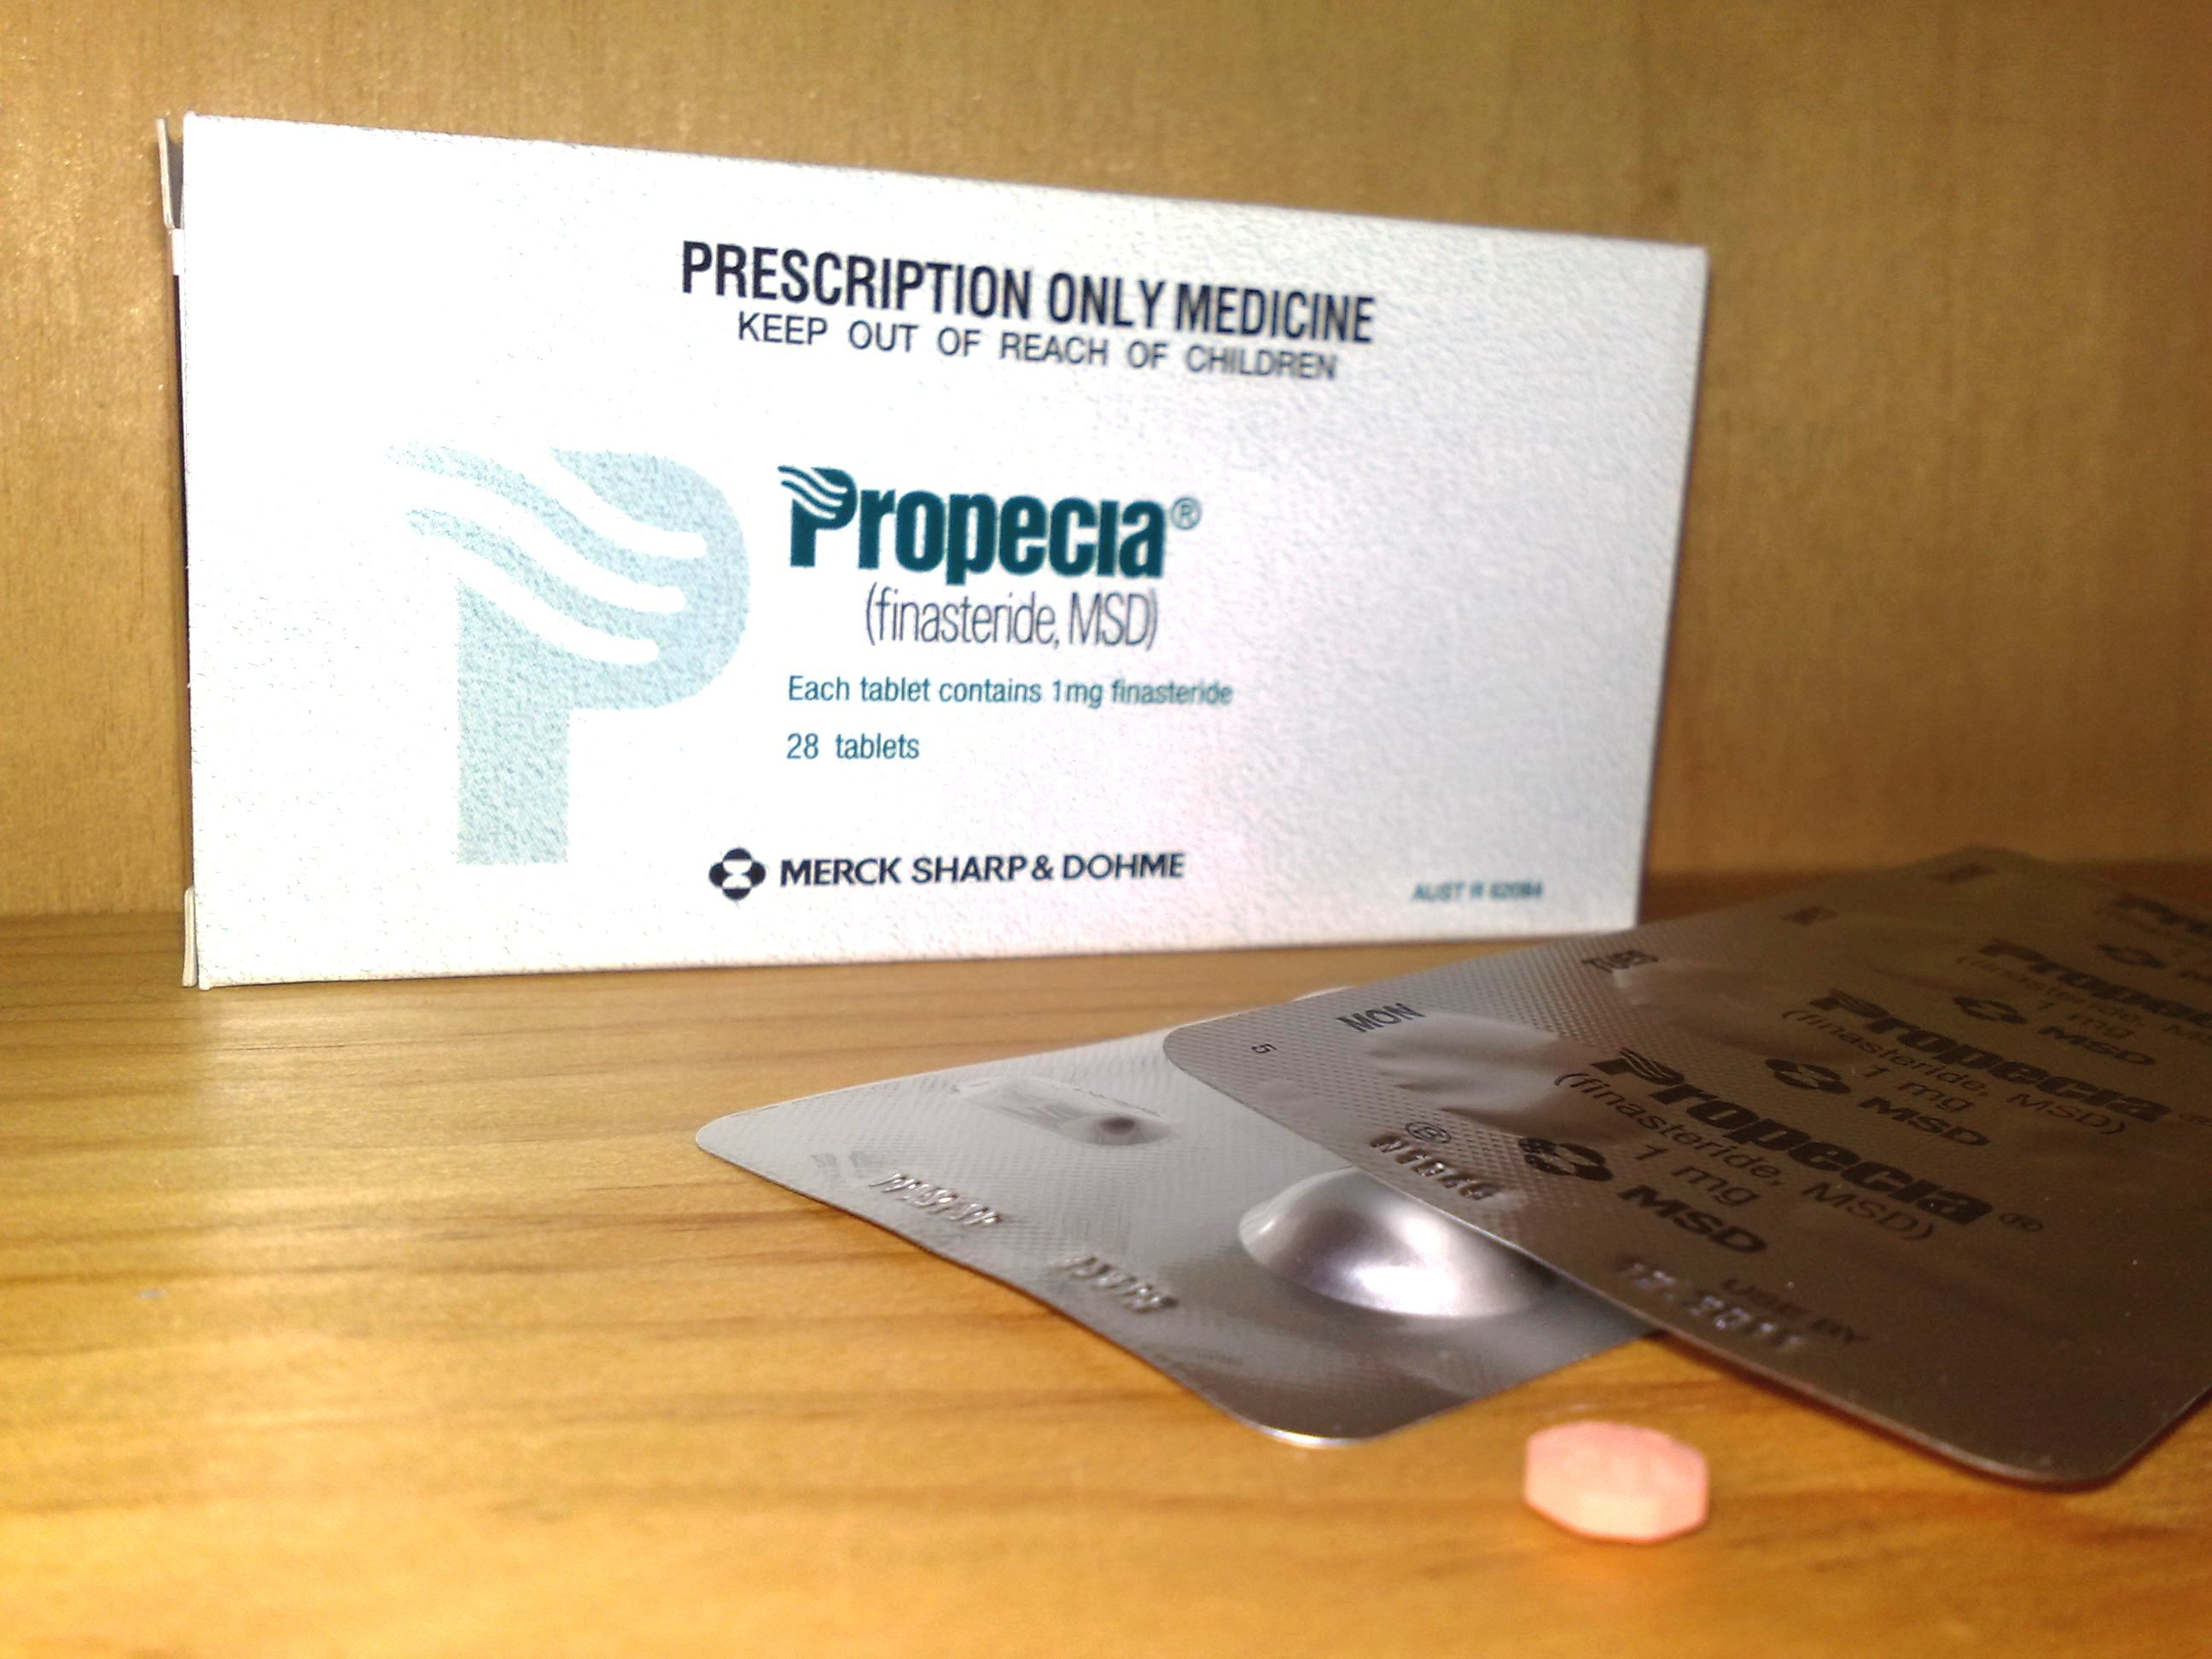 Can propecia cause permanent infertility